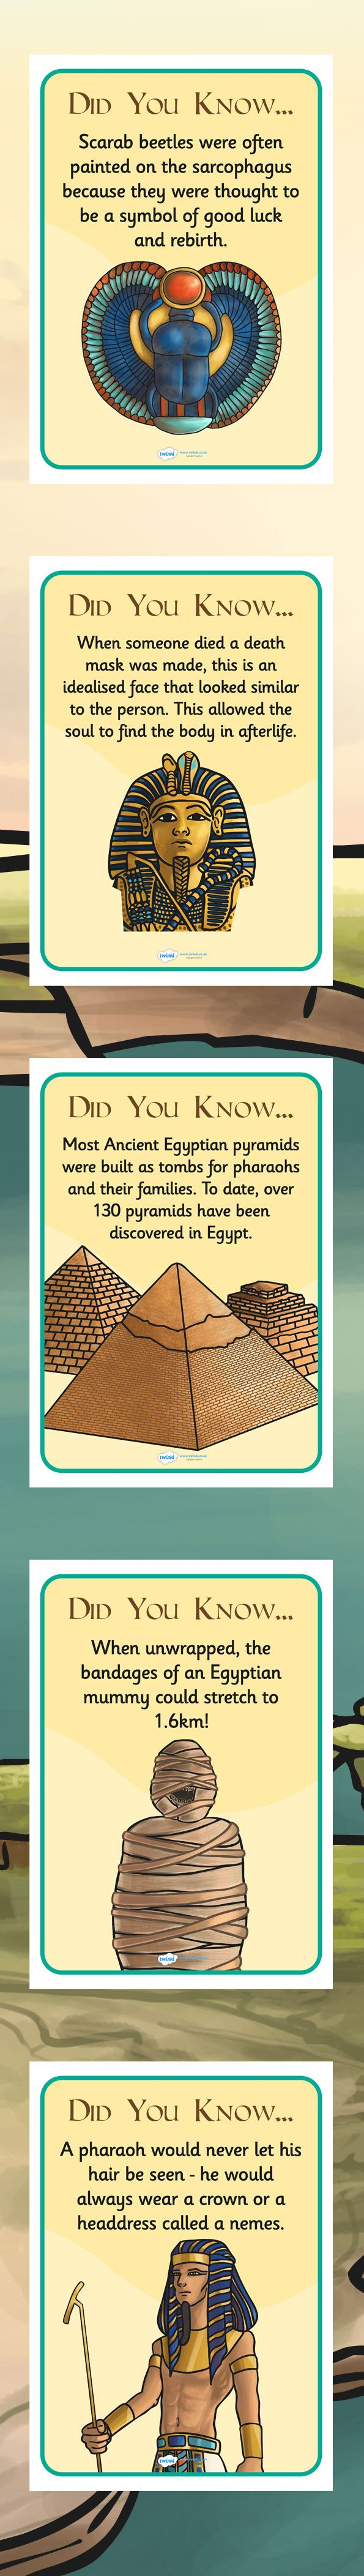 KS2 Ancient Egypt- Fun Facts Posters | Egypt history ...